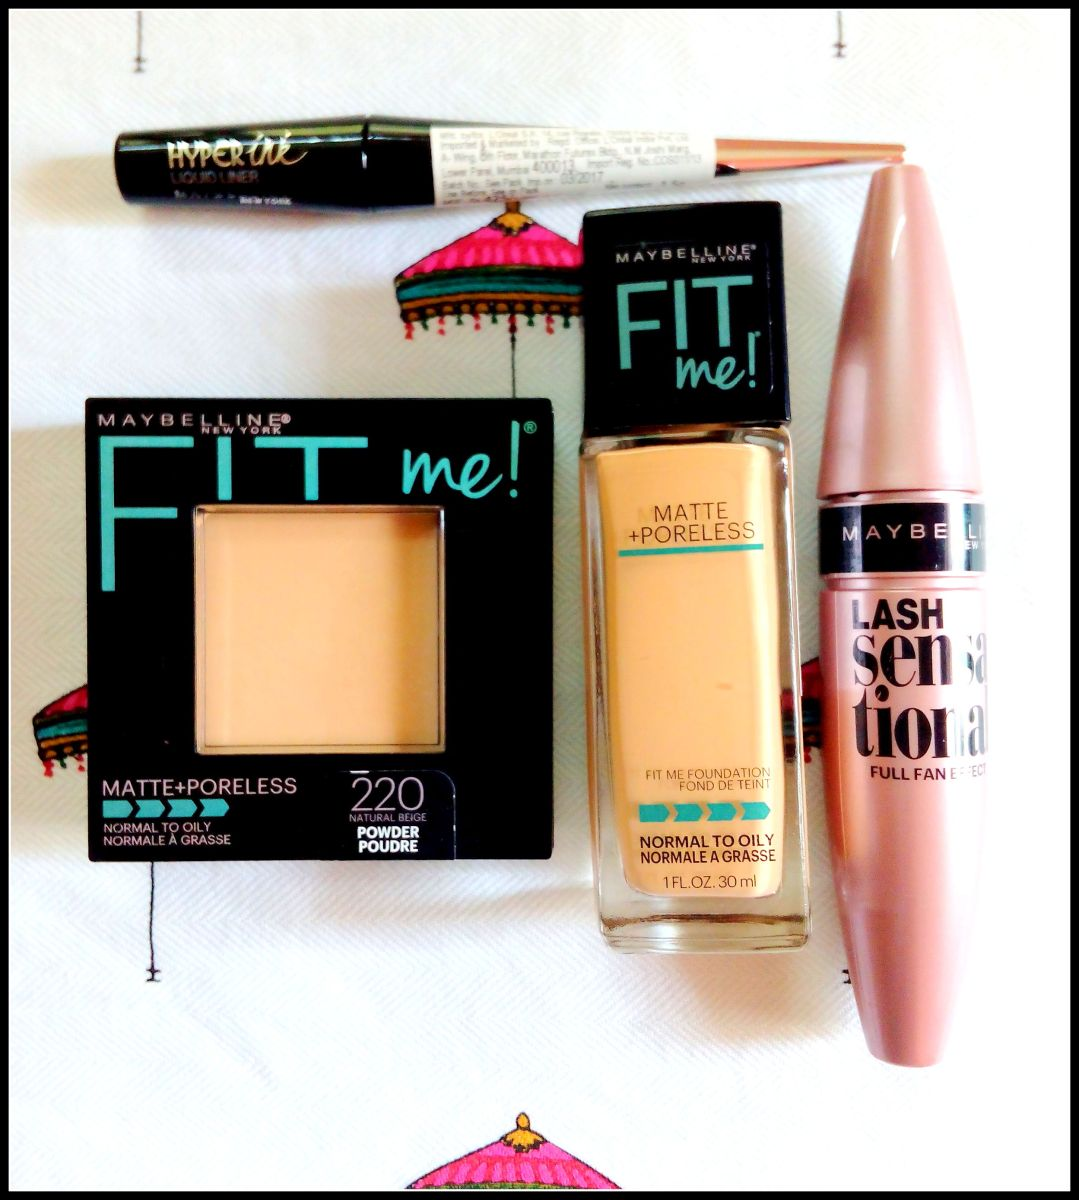 Maybelline makeup Haul + product review